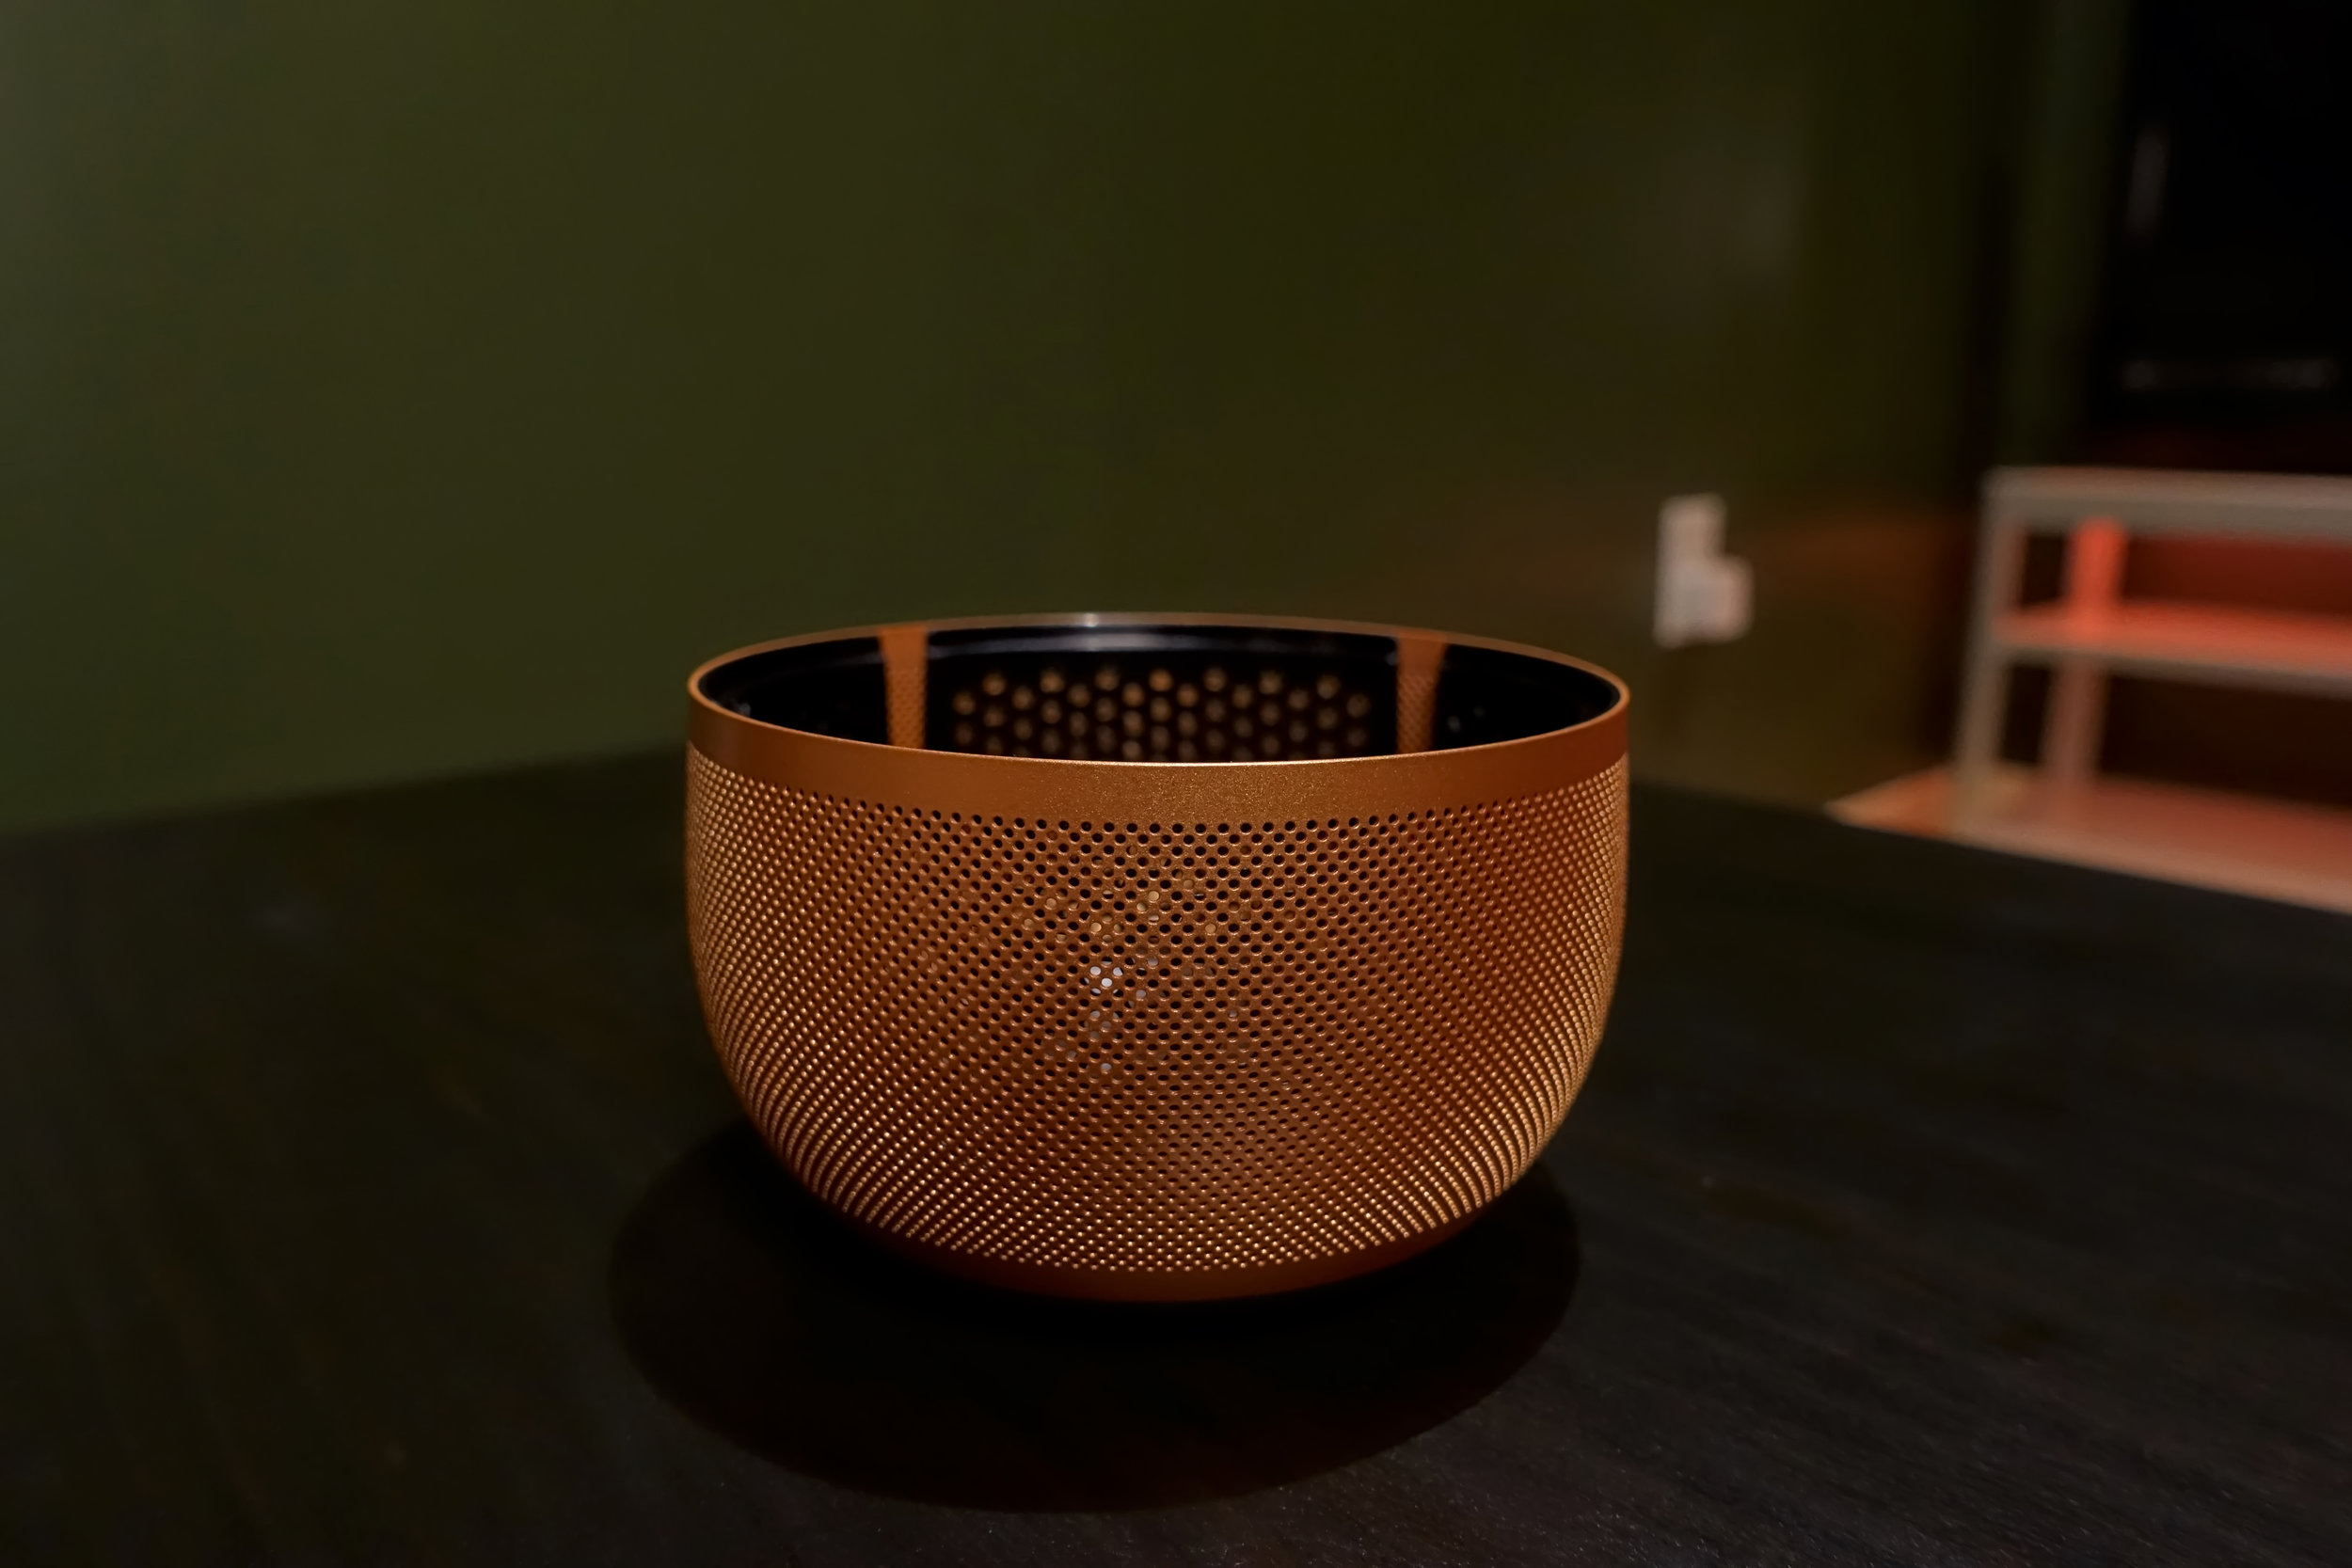 google home copper front angle.jpeg